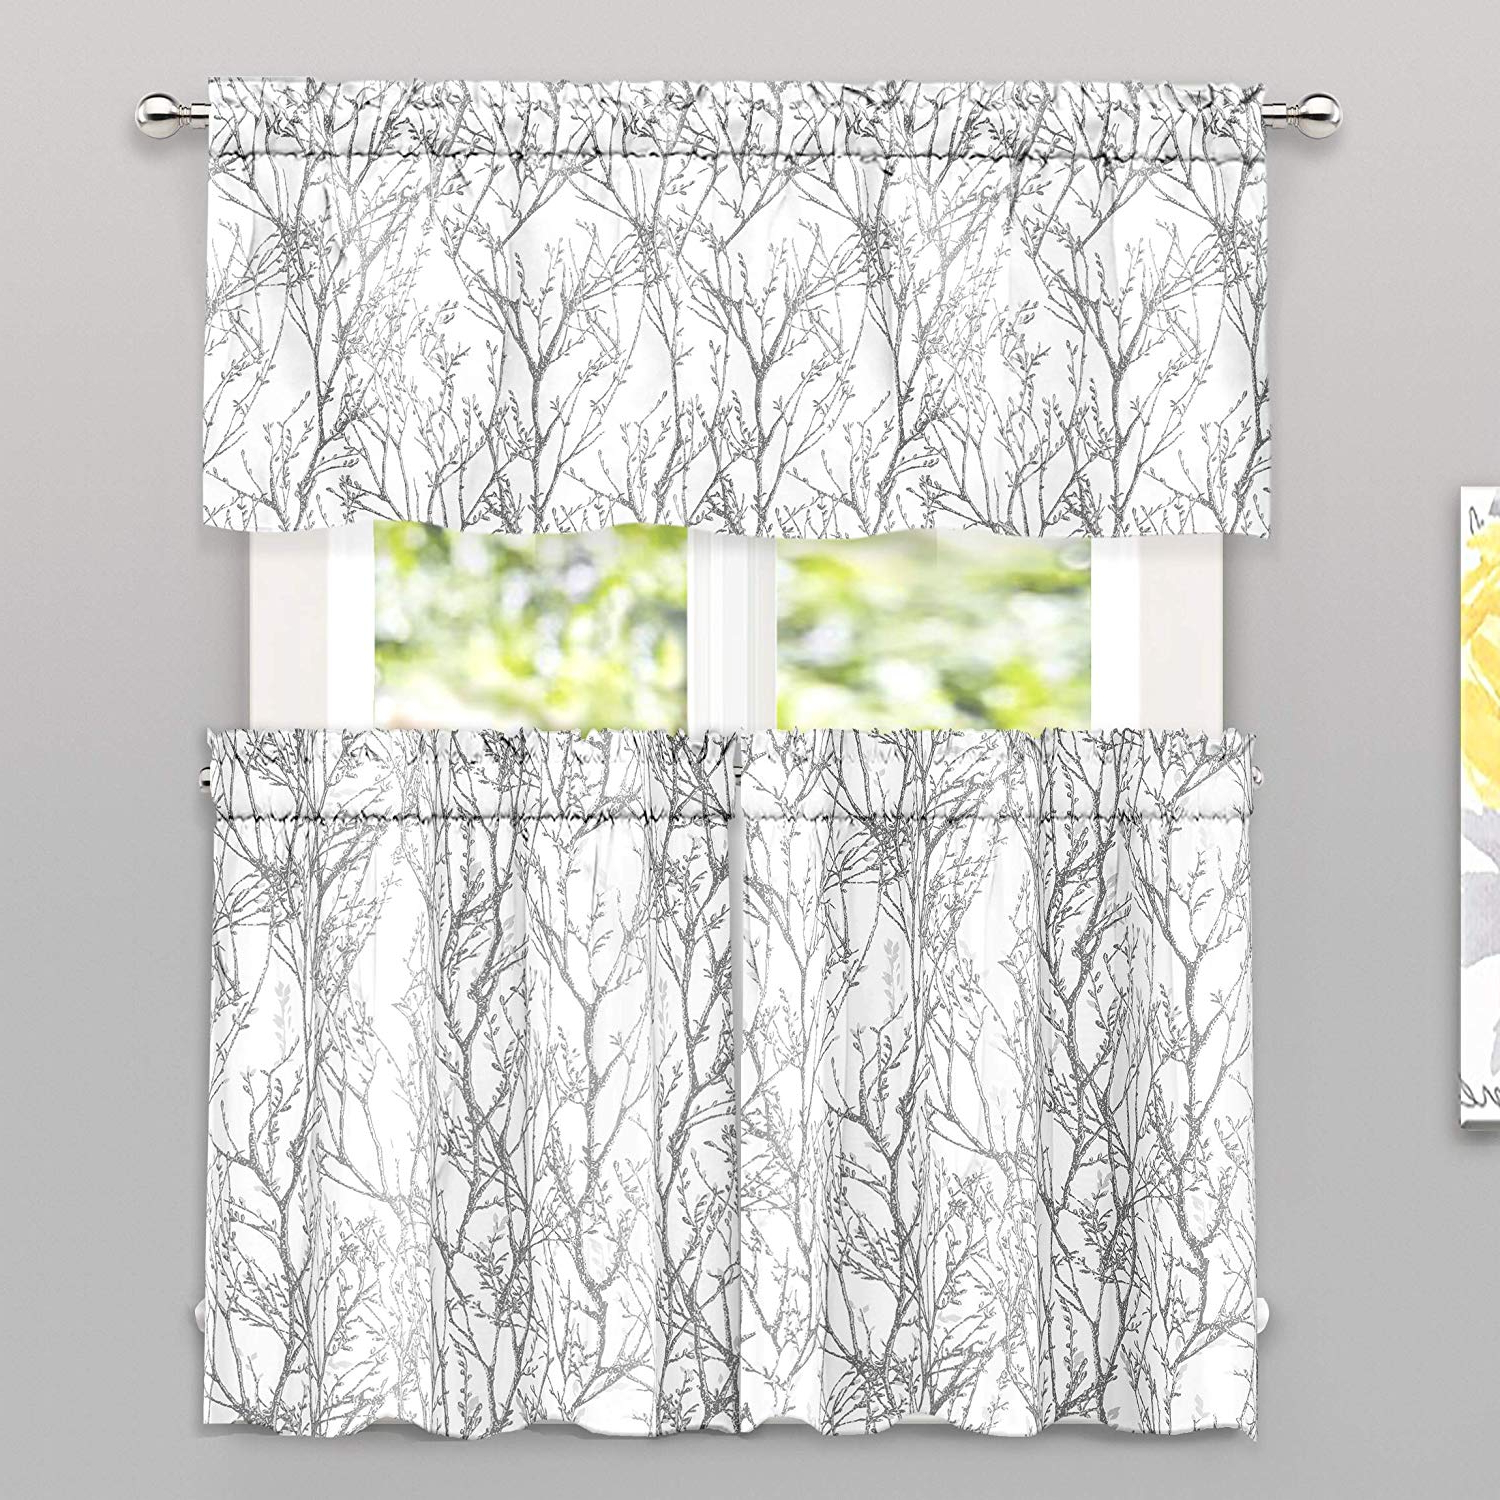 Tree Branch Valance And Tiers Sets Within Current Driftaway Tree Branch Botanical Pattern Semi Sheer 3 Pieces Kitchen Window Curtain Set With 2 Tiers And 1 Valance Bathroom Café Curtain Rod Pocket (View 6 of 20)